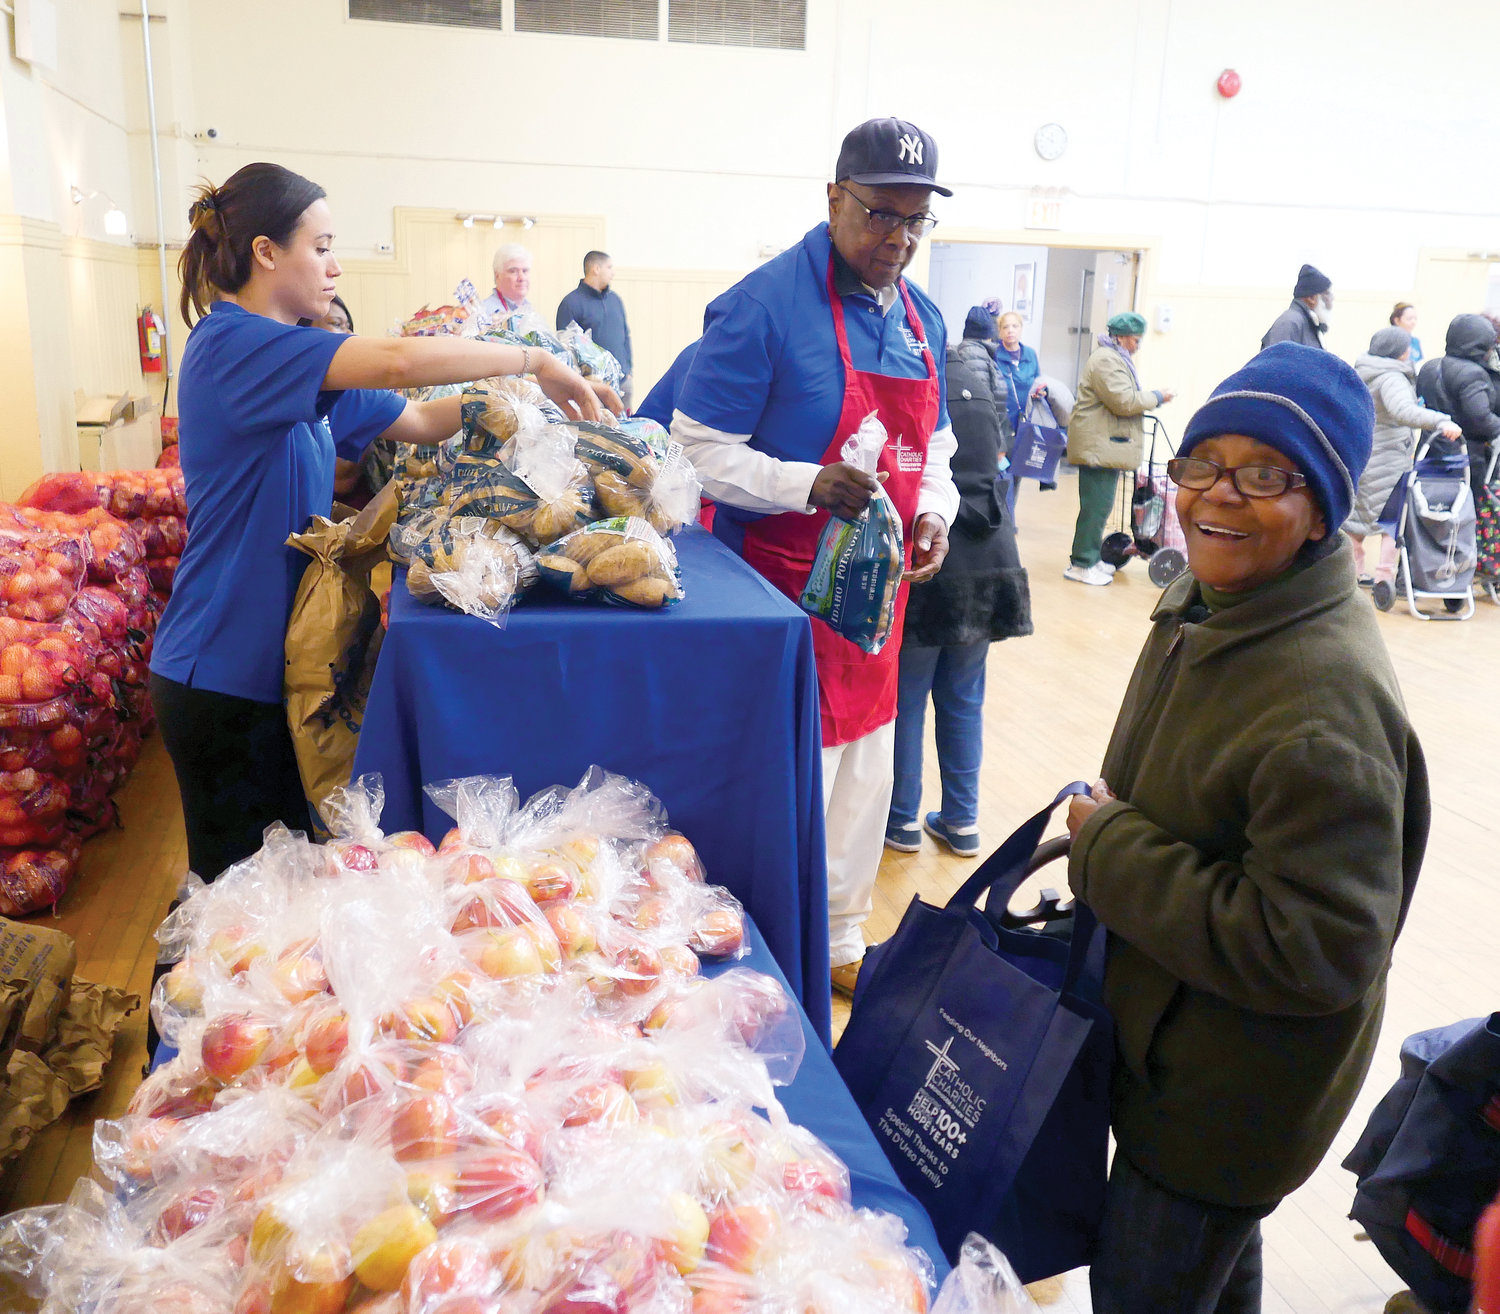 Volunteers and recipients are shown at the community center, located on West 134th Street.